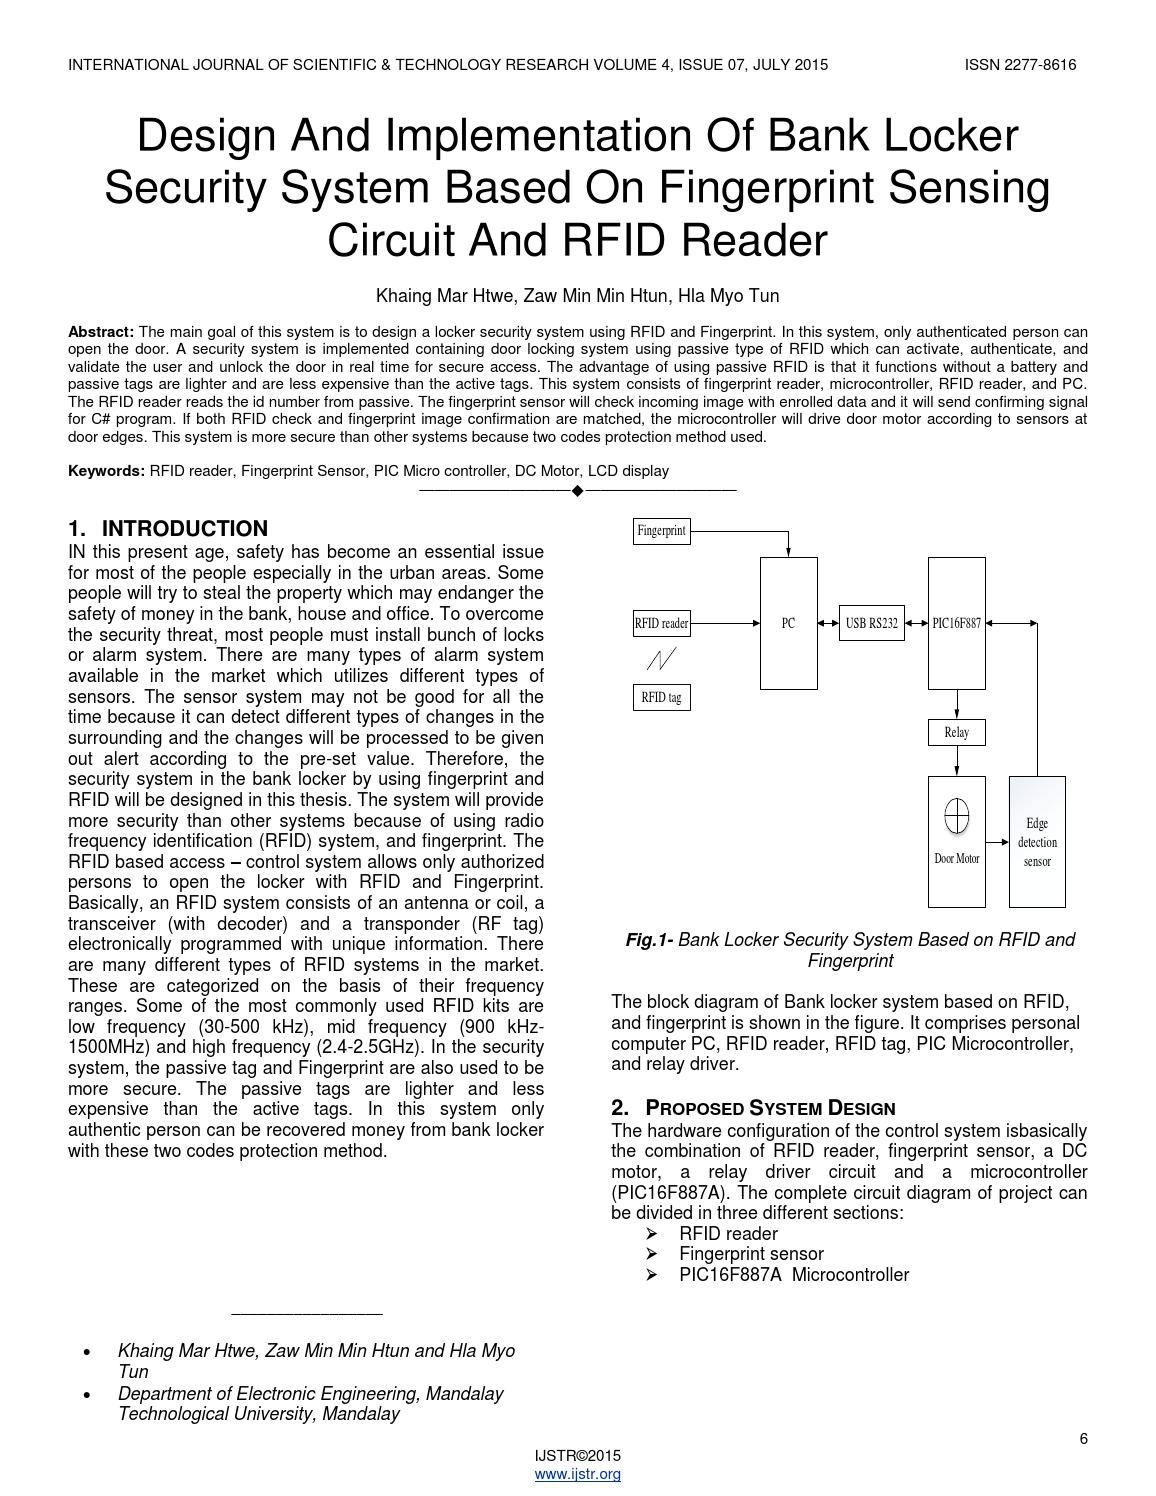 Design And Implementation Of Bank Locker Security System Based On - Circuit diagram of relay driver